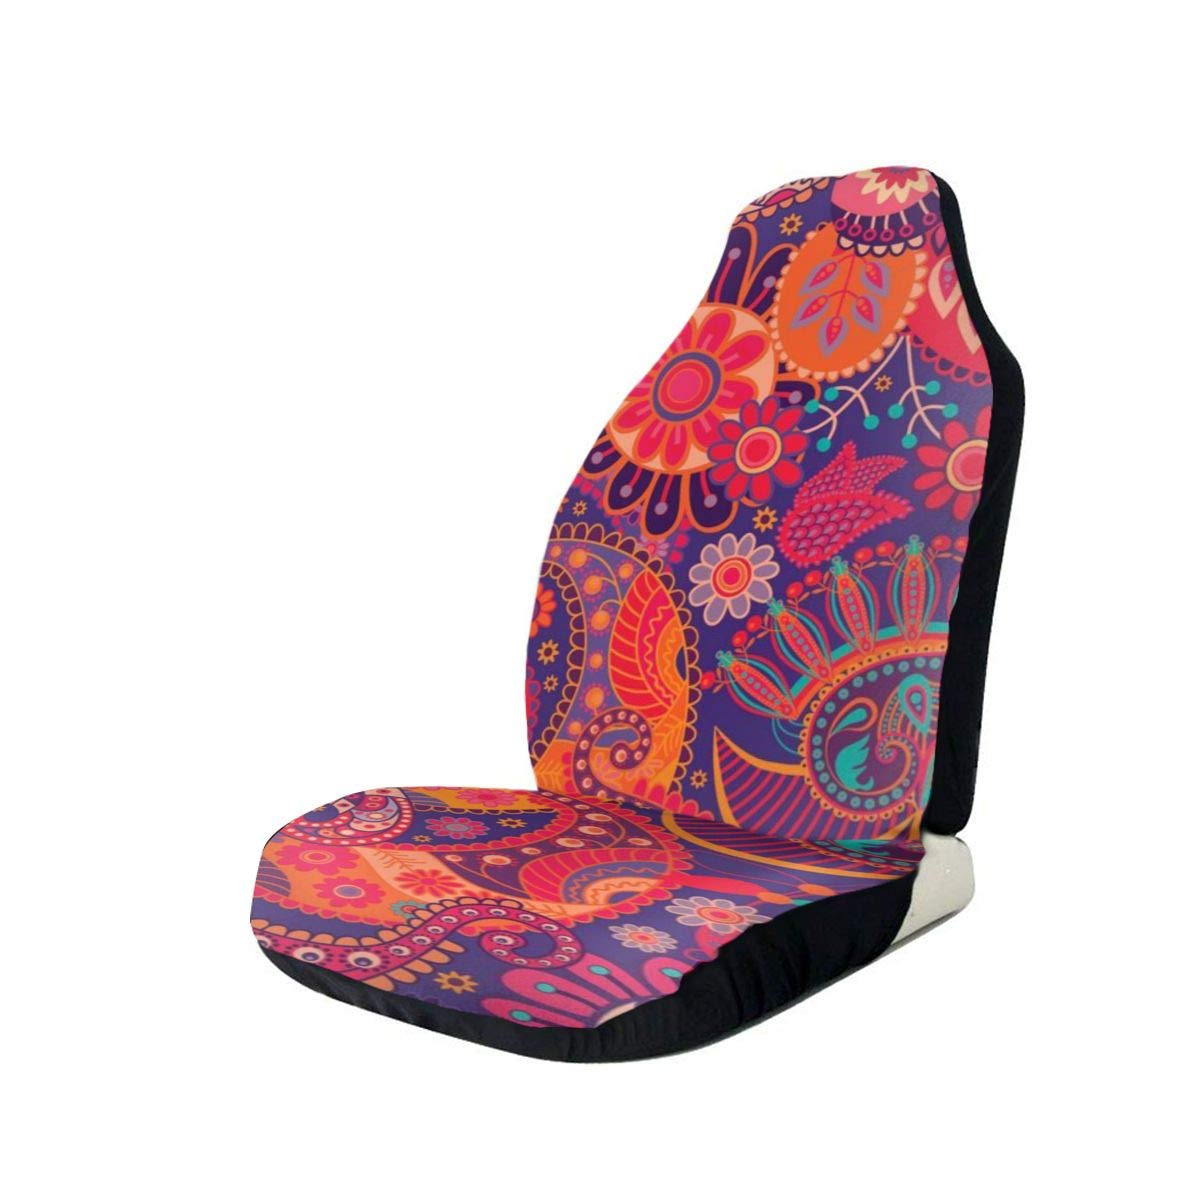 Red Purple Paisley Car Seat Protector Front Seats Cover Auto Seat Cover Pad Anti-Slip Car Accessory Universal Fit Standard Vehicles Trucks & SUVs